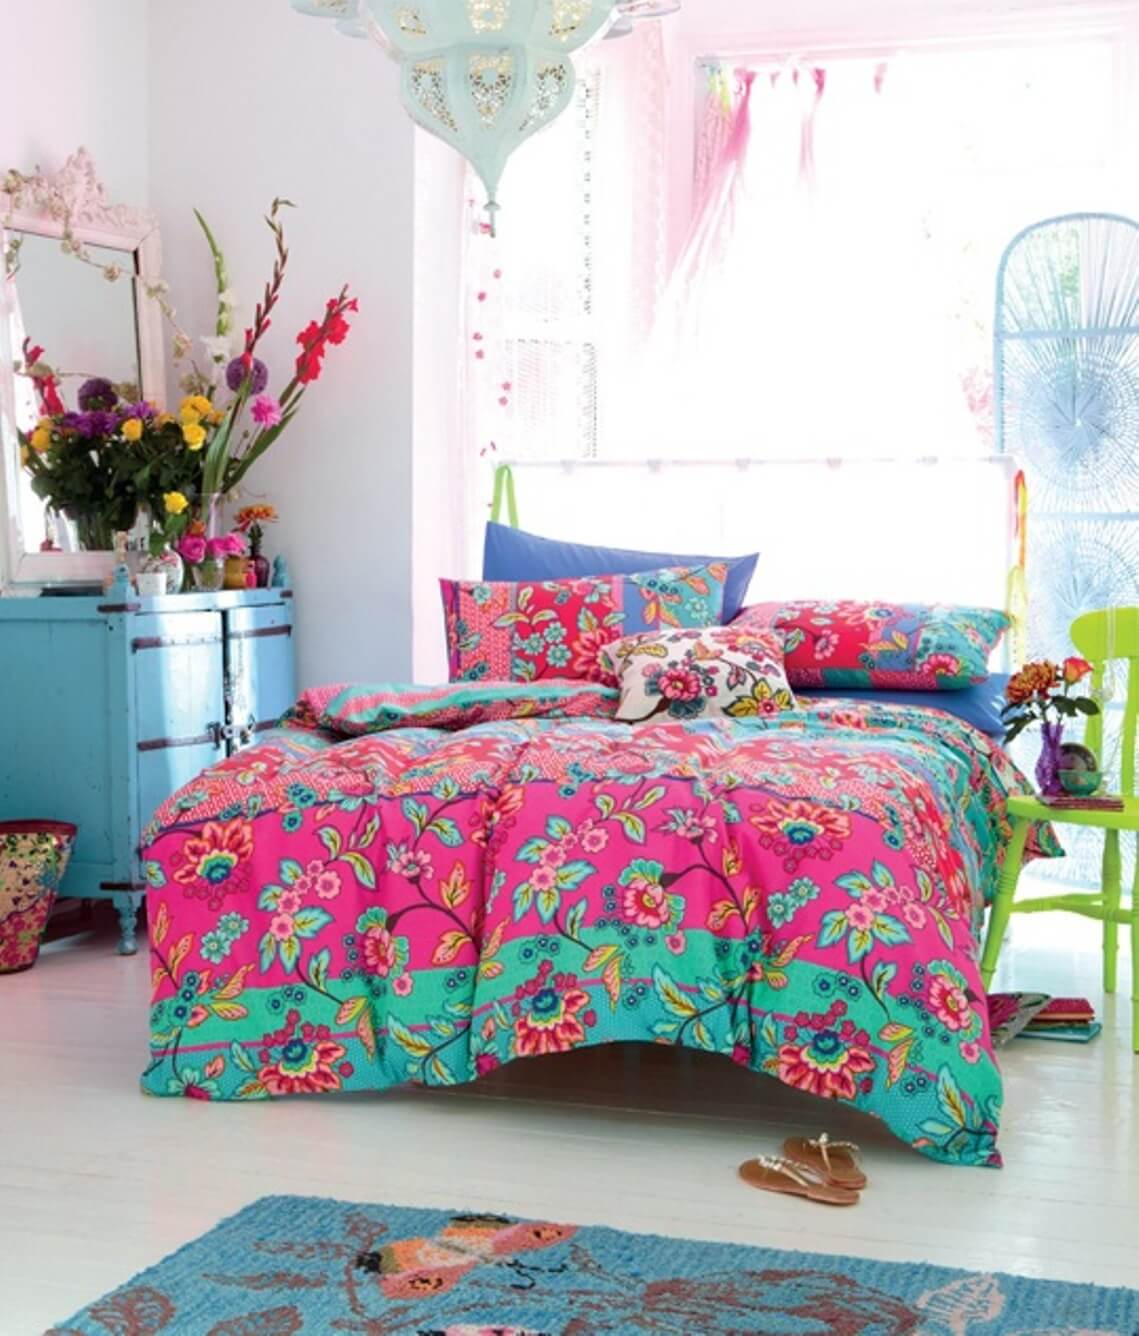 Colorful Kids Rooms: 8 Bohemian Chic Teen Girl's Bedroom Ideas